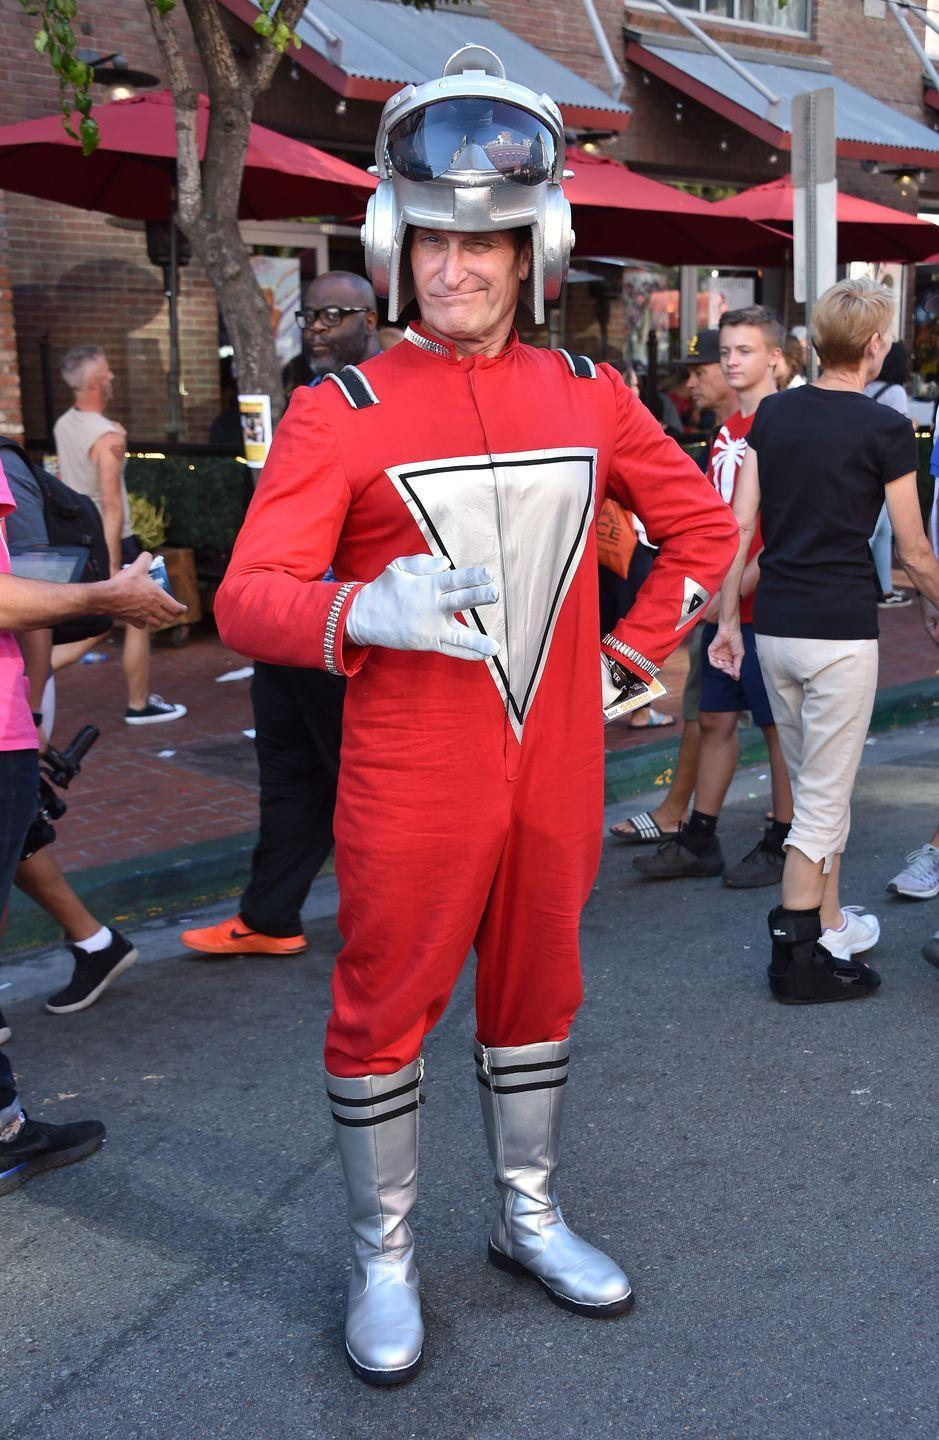 """<p>Take on Robin Williams' character Mork from Ork with a red jumpsuit and silver boots. </p><p><a class=""""link rapid-noclick-resp"""" href=""""https://www.amazon.com/Retro-Spaceman-Halloween-Costume-Shirt/dp/B07PGWKWHL?tag=syn-yahoo-20&ascsubtag=%5Bartid%7C10070.g.23122163%5Bsrc%7Cyahoo-us"""" rel=""""nofollow noopener"""" target=""""_blank"""" data-ylk=""""slk:SHOP RED SHIRT"""">SHOP RED SHIRT</a></p>"""